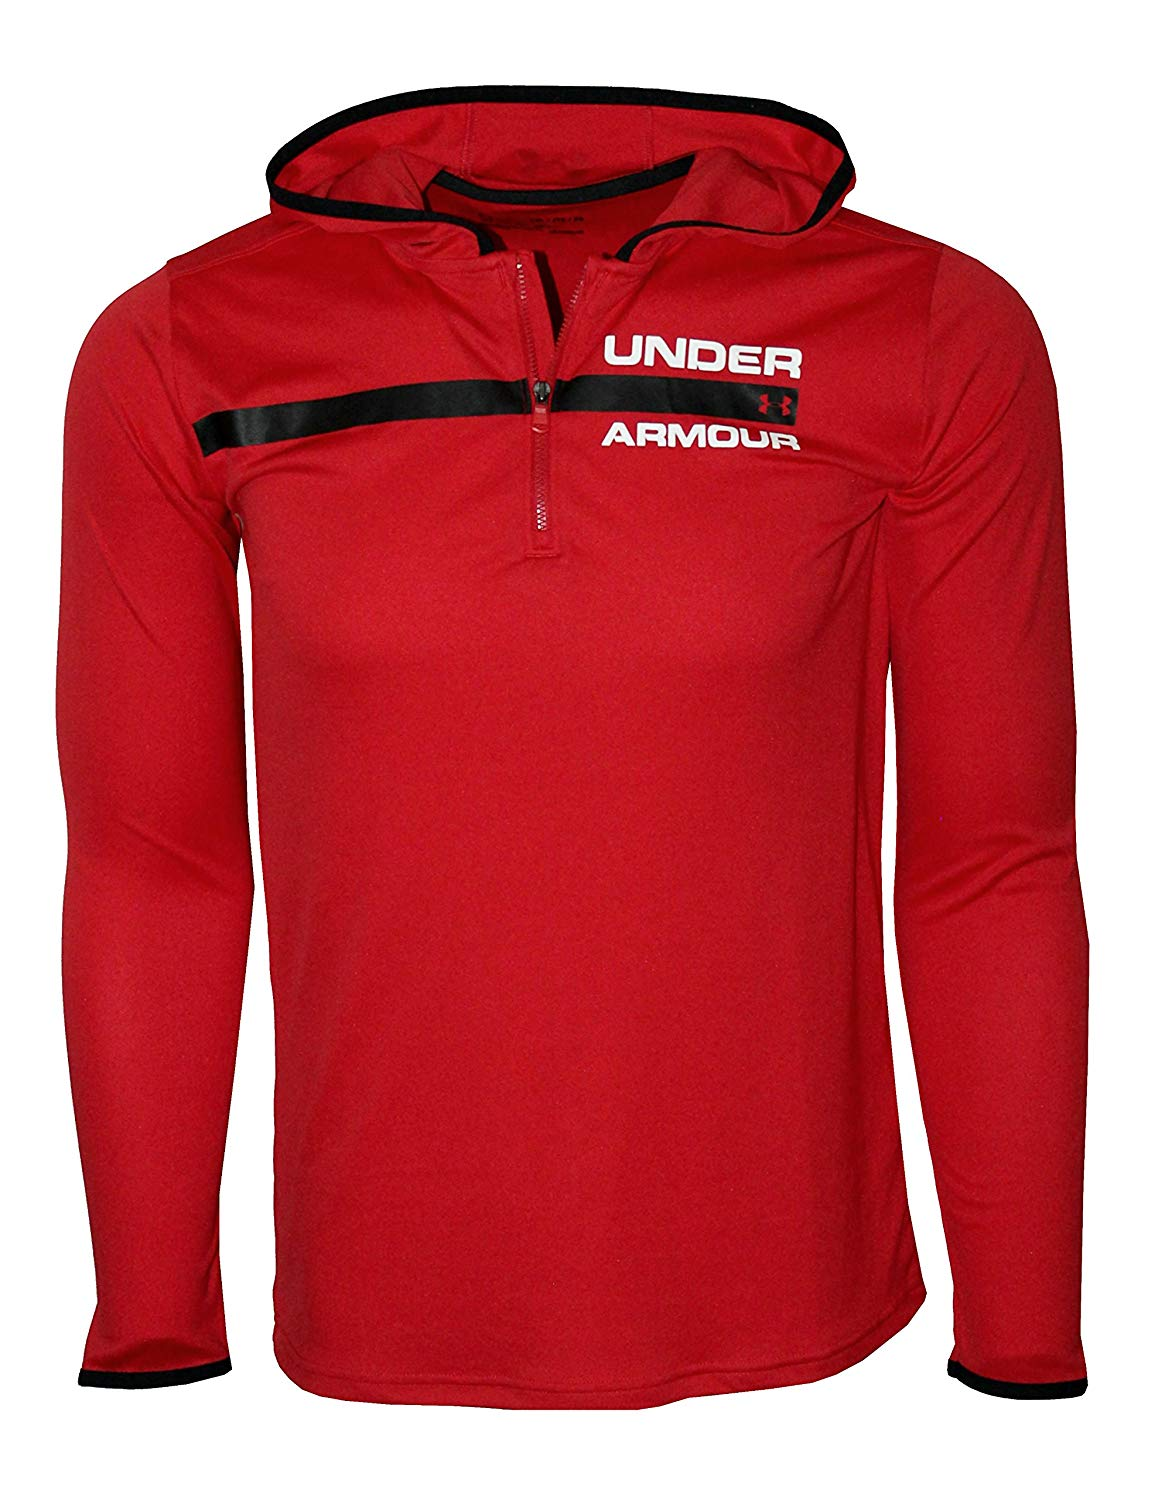 Under Armour Big Boys 8-18 Athletic Zip Hooded Light Shirt Hoodie Size M